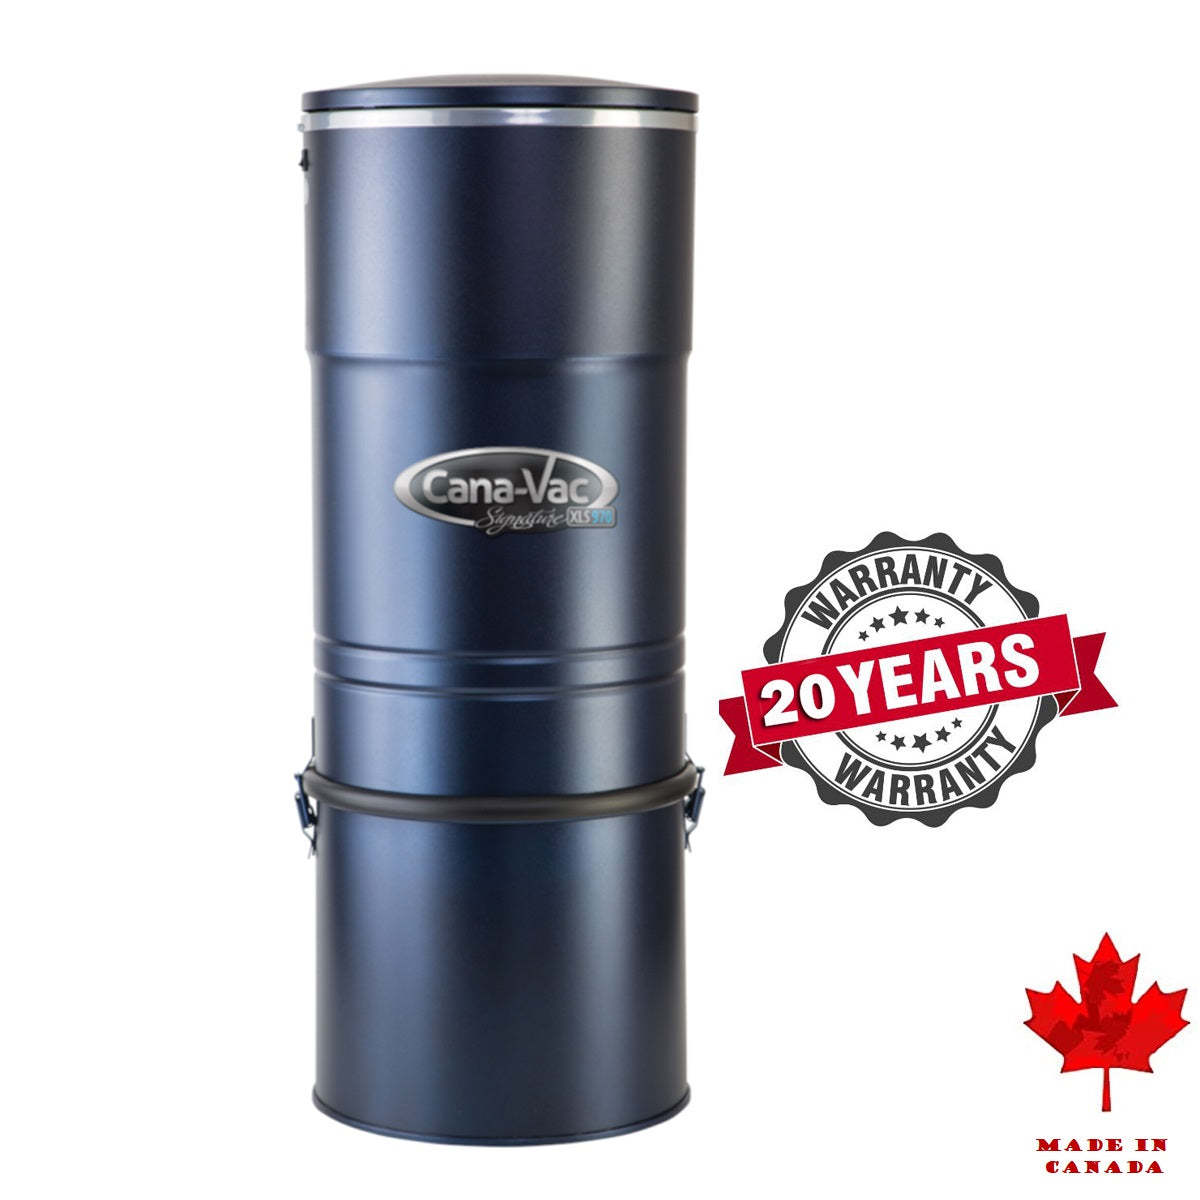 CanaVac Signature XLS990 Canister Only - Central Vacuum Cleaner - Super Vacs